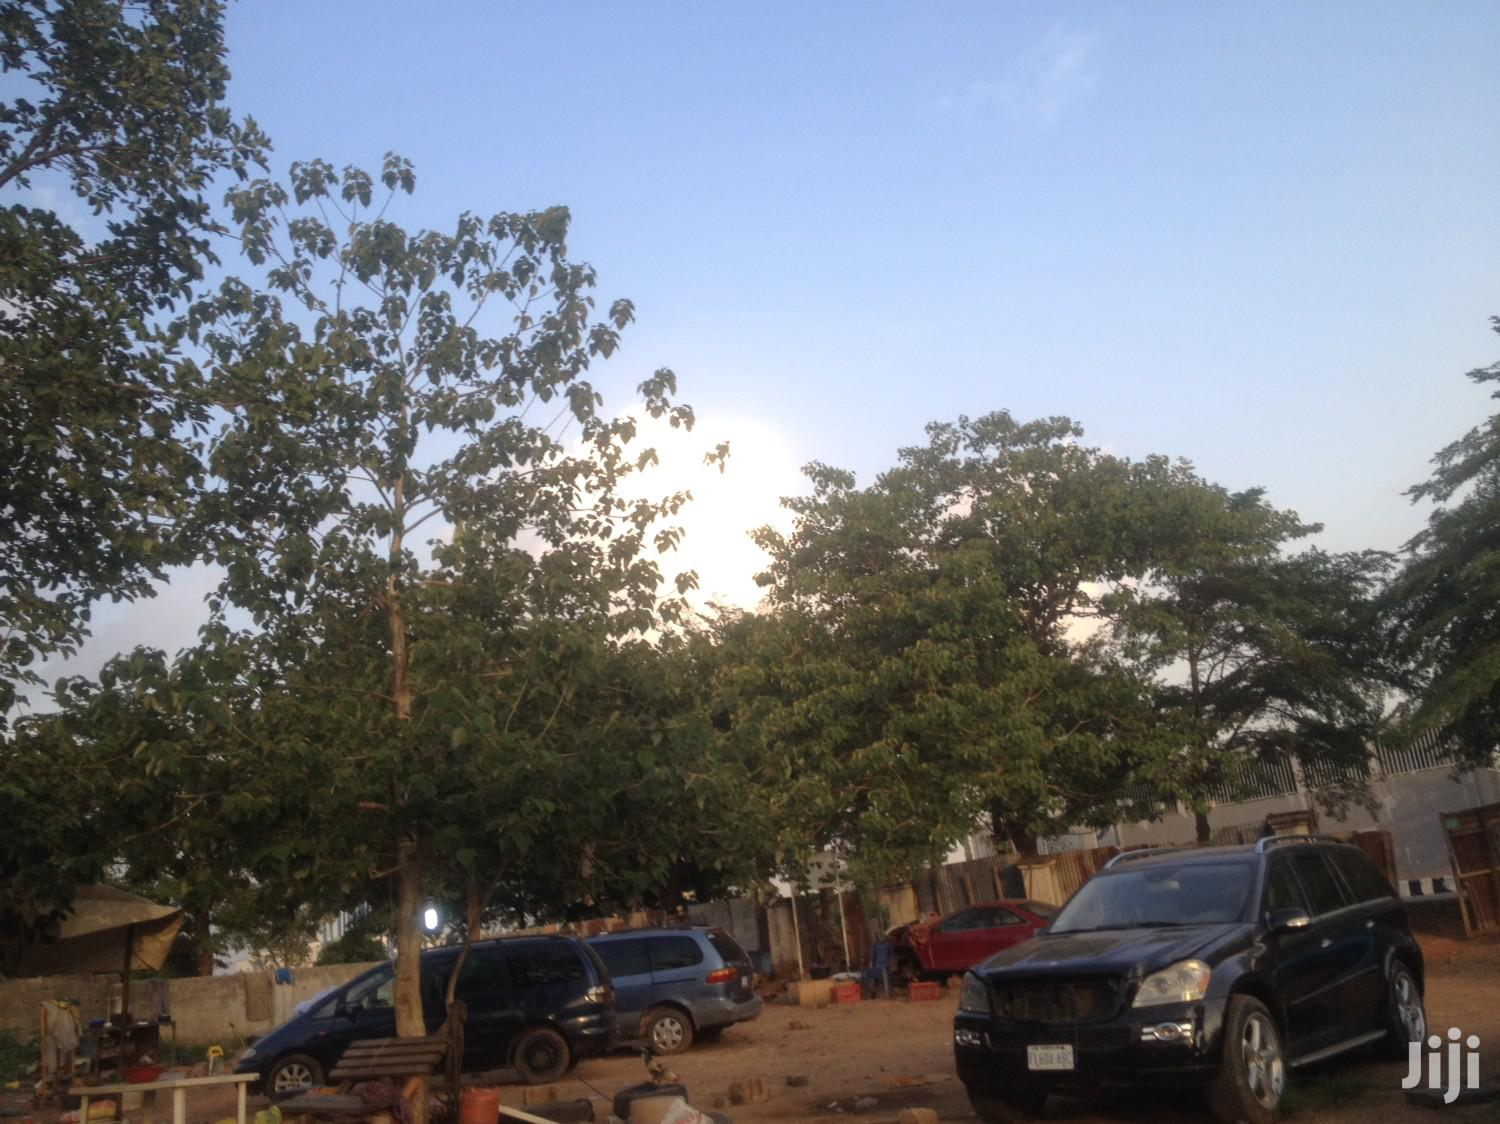 A Very Strategically Placed Land for Sale | Land & Plots For Sale for sale in Central Business Dis, Abuja (FCT) State, Nigeria